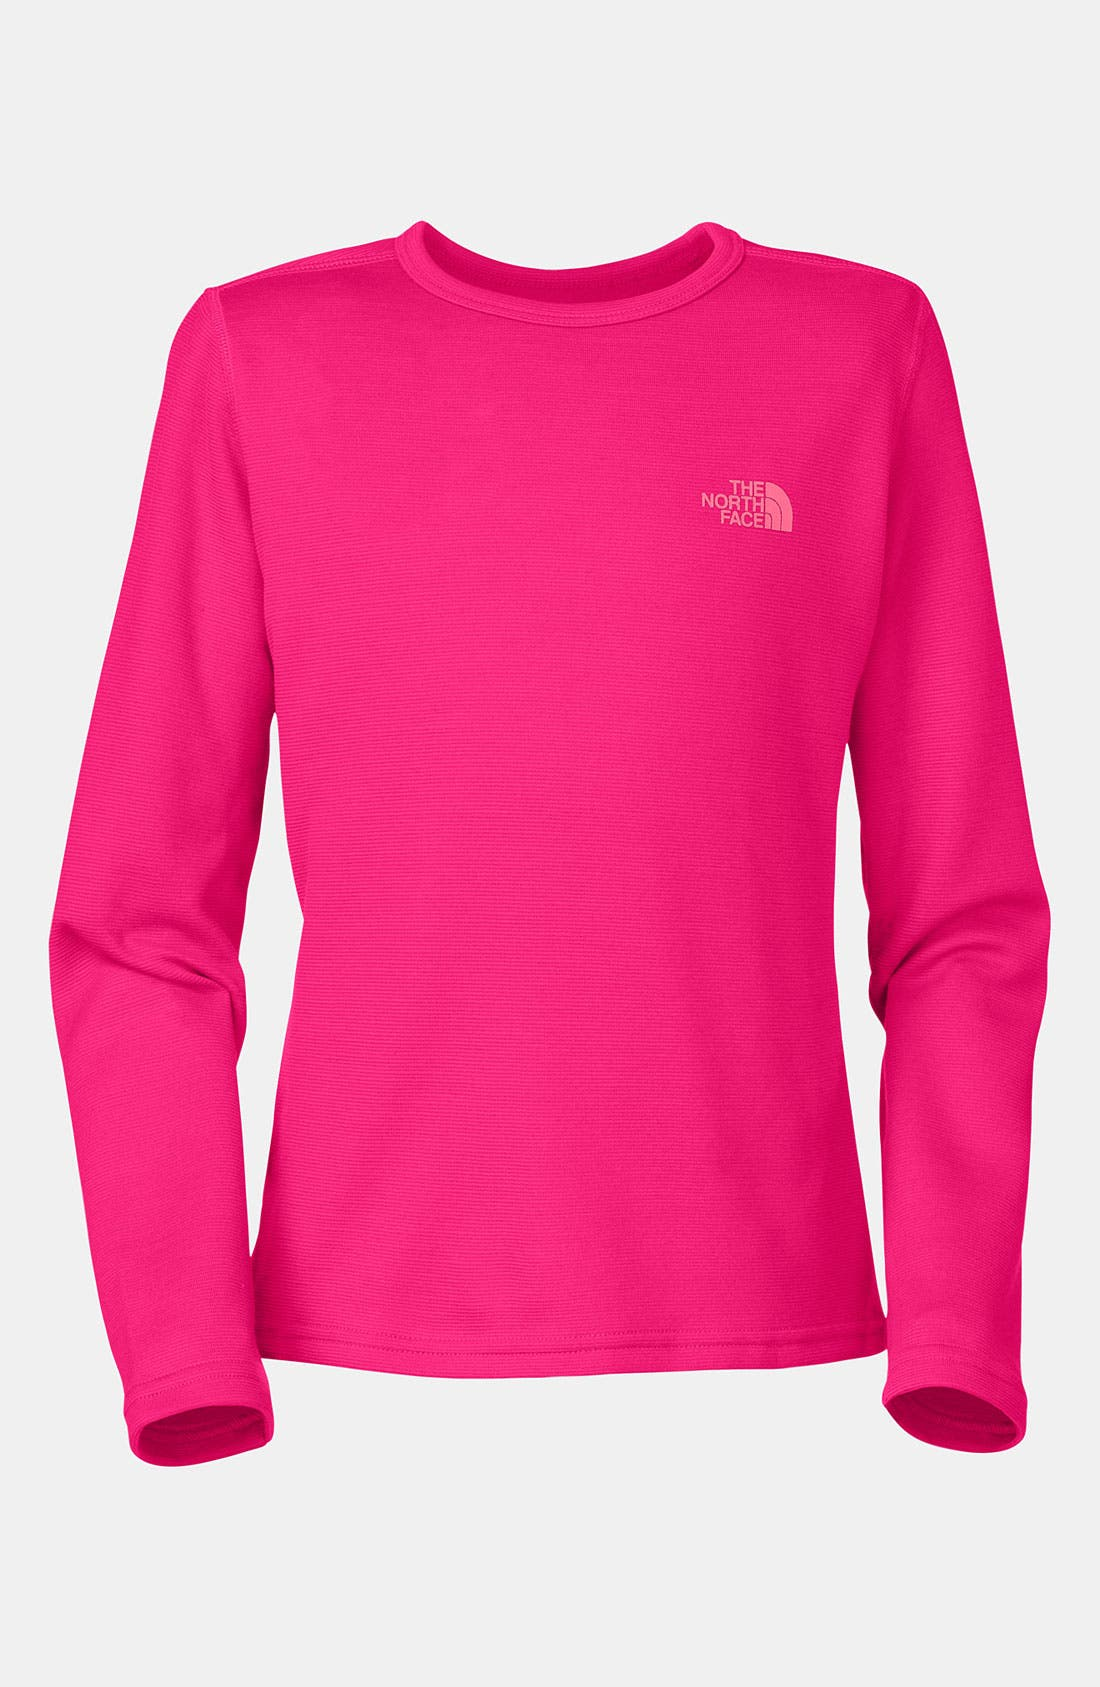 Alternate Image 1 Selected - The North Face 'Base Layer' Tee (Little Girls & Big Girls)